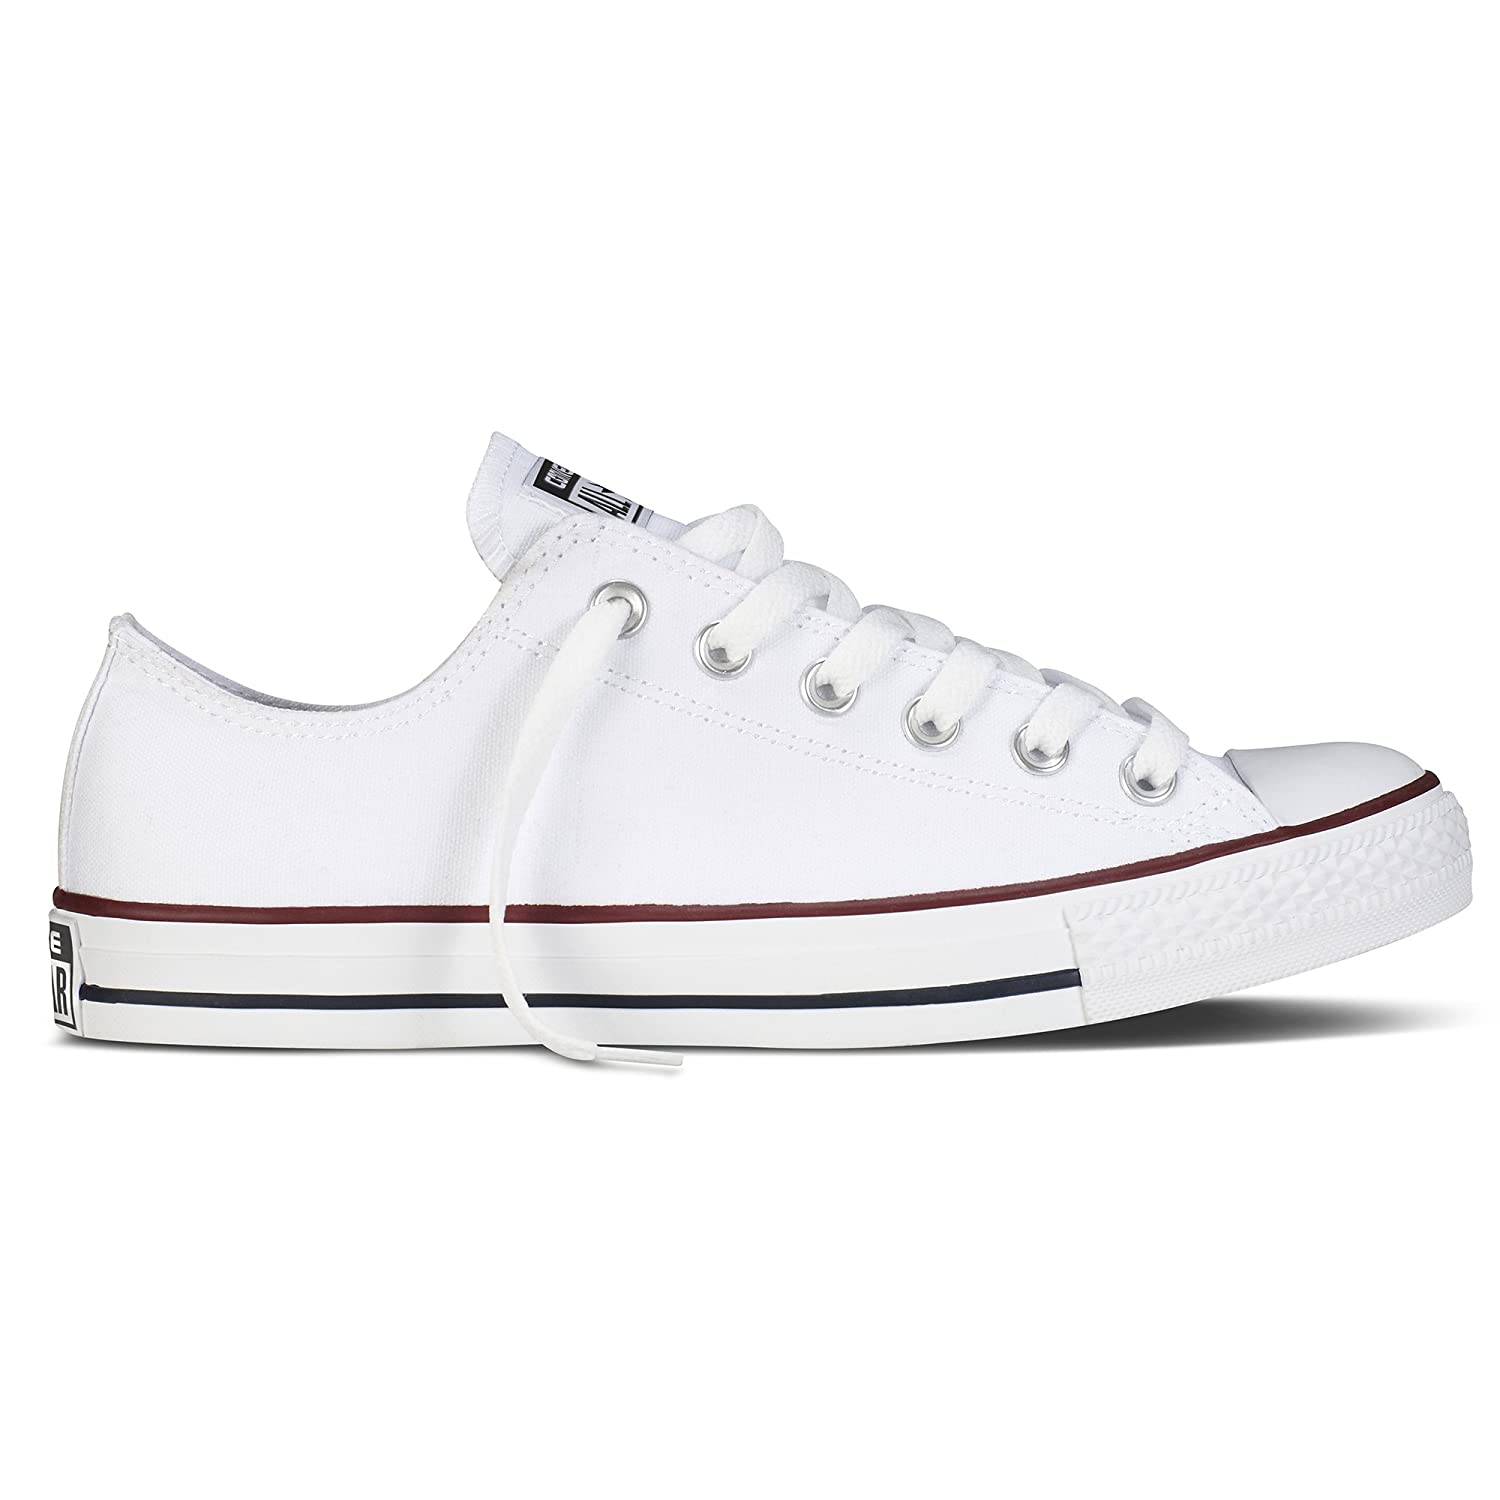 Converse Chuck Taylor All Star Ox Optical White(Size: 4.5 US Men's)